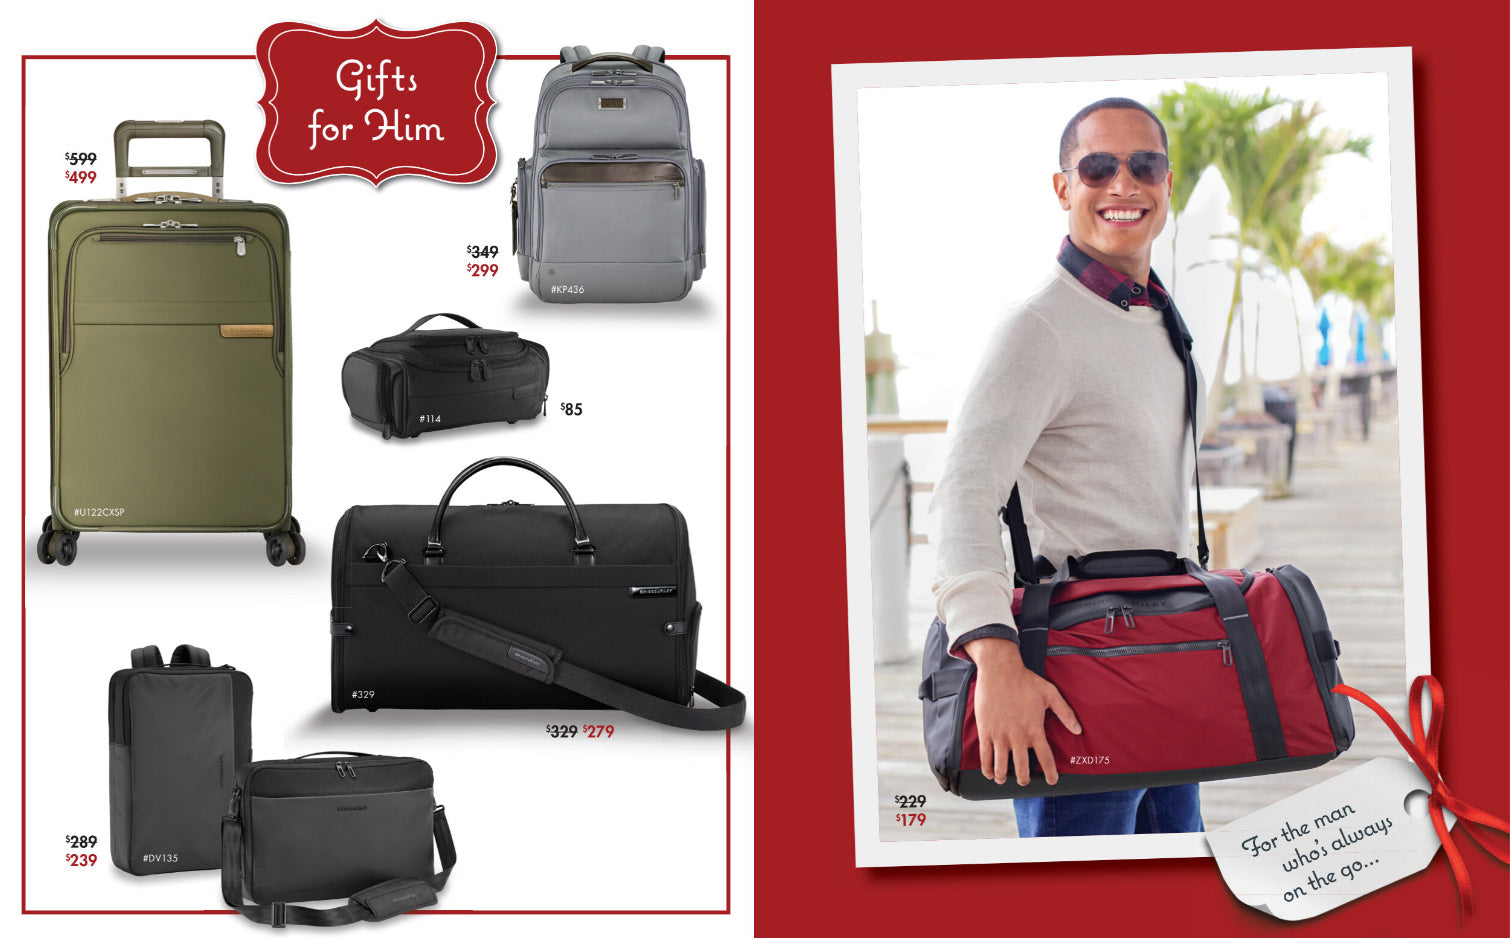 Briggs & Riley Holiday Gifts For Him